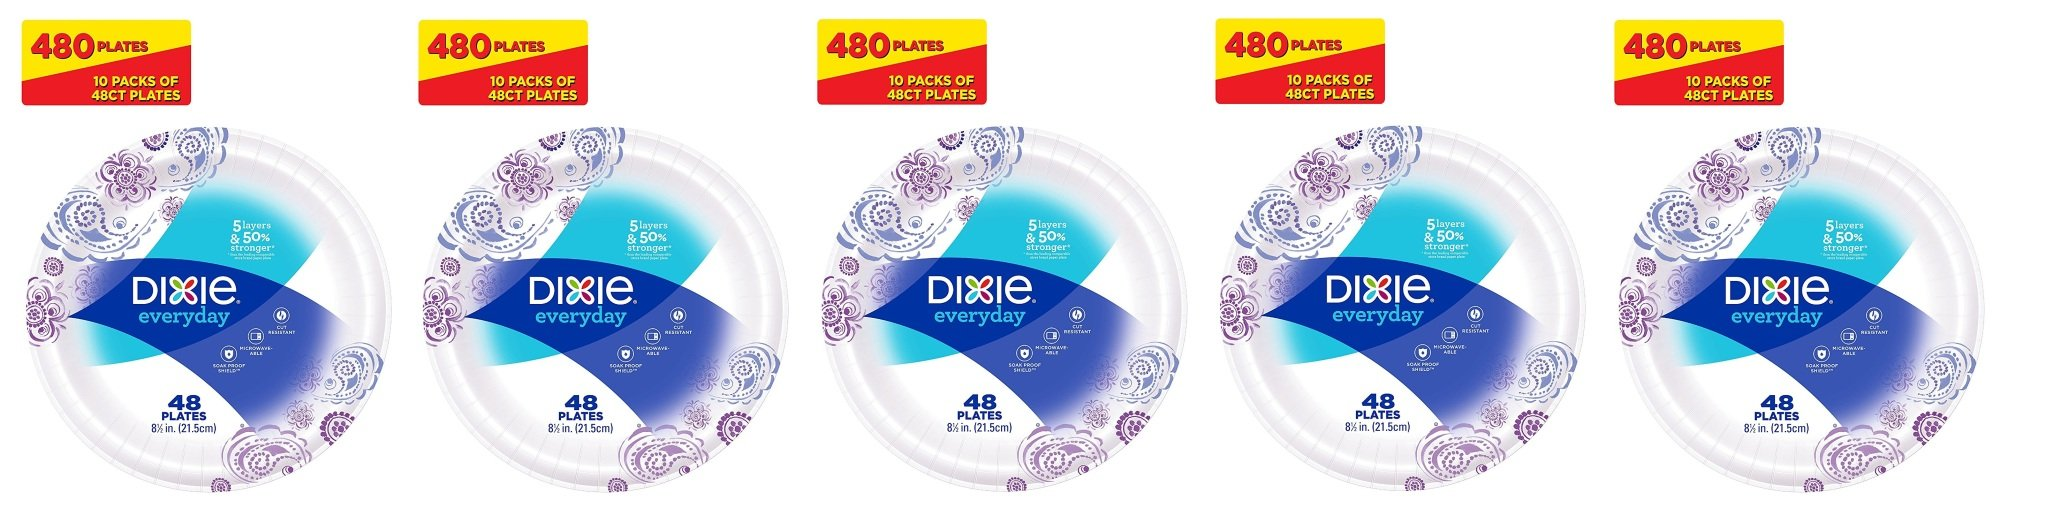 Dixie Everyday Paper Plates, 8 1/2 Inch Plates, 480 Count (10 Packs of 48 Plates); Designs May Vary (5 Pack(480 Count))